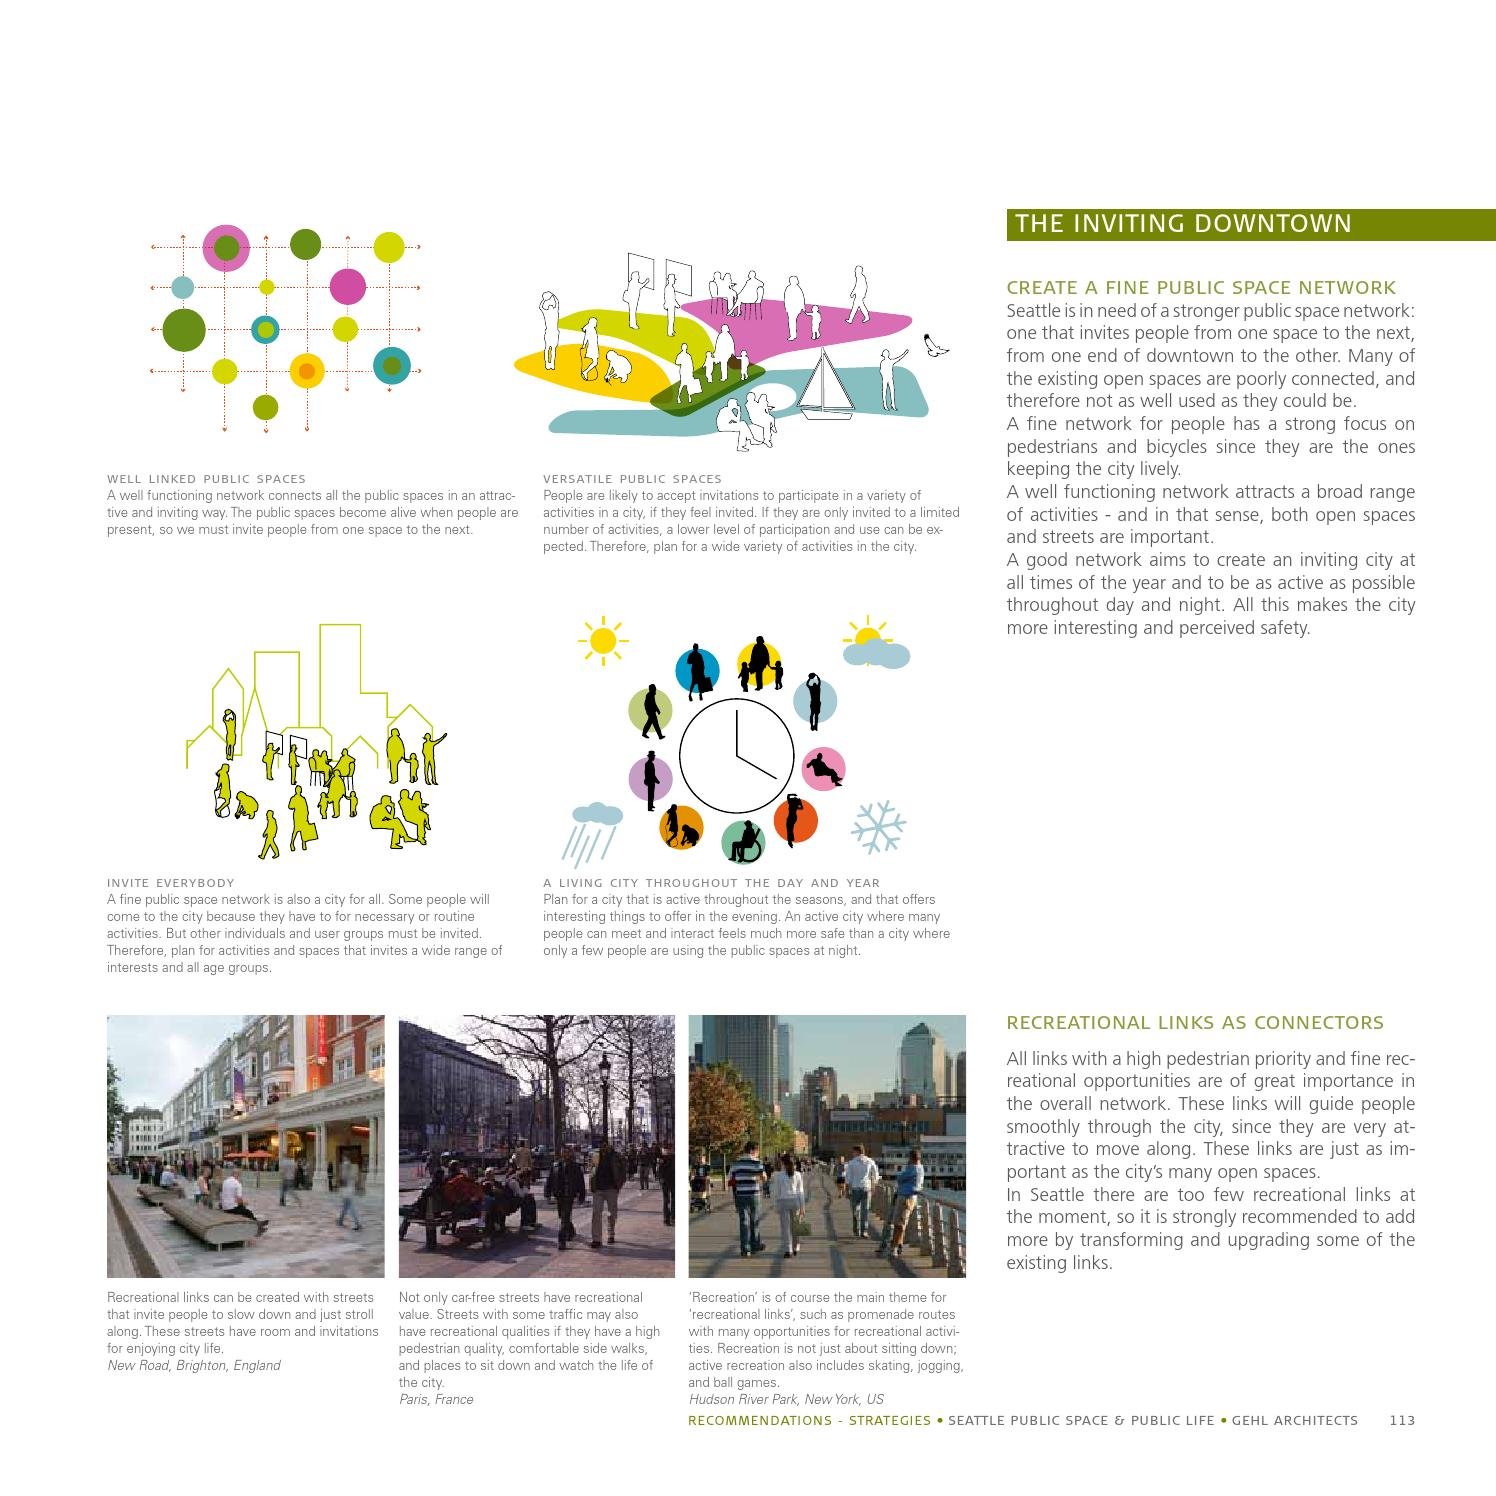 Seattle Public Space Public Life By Gehl Making Cities For